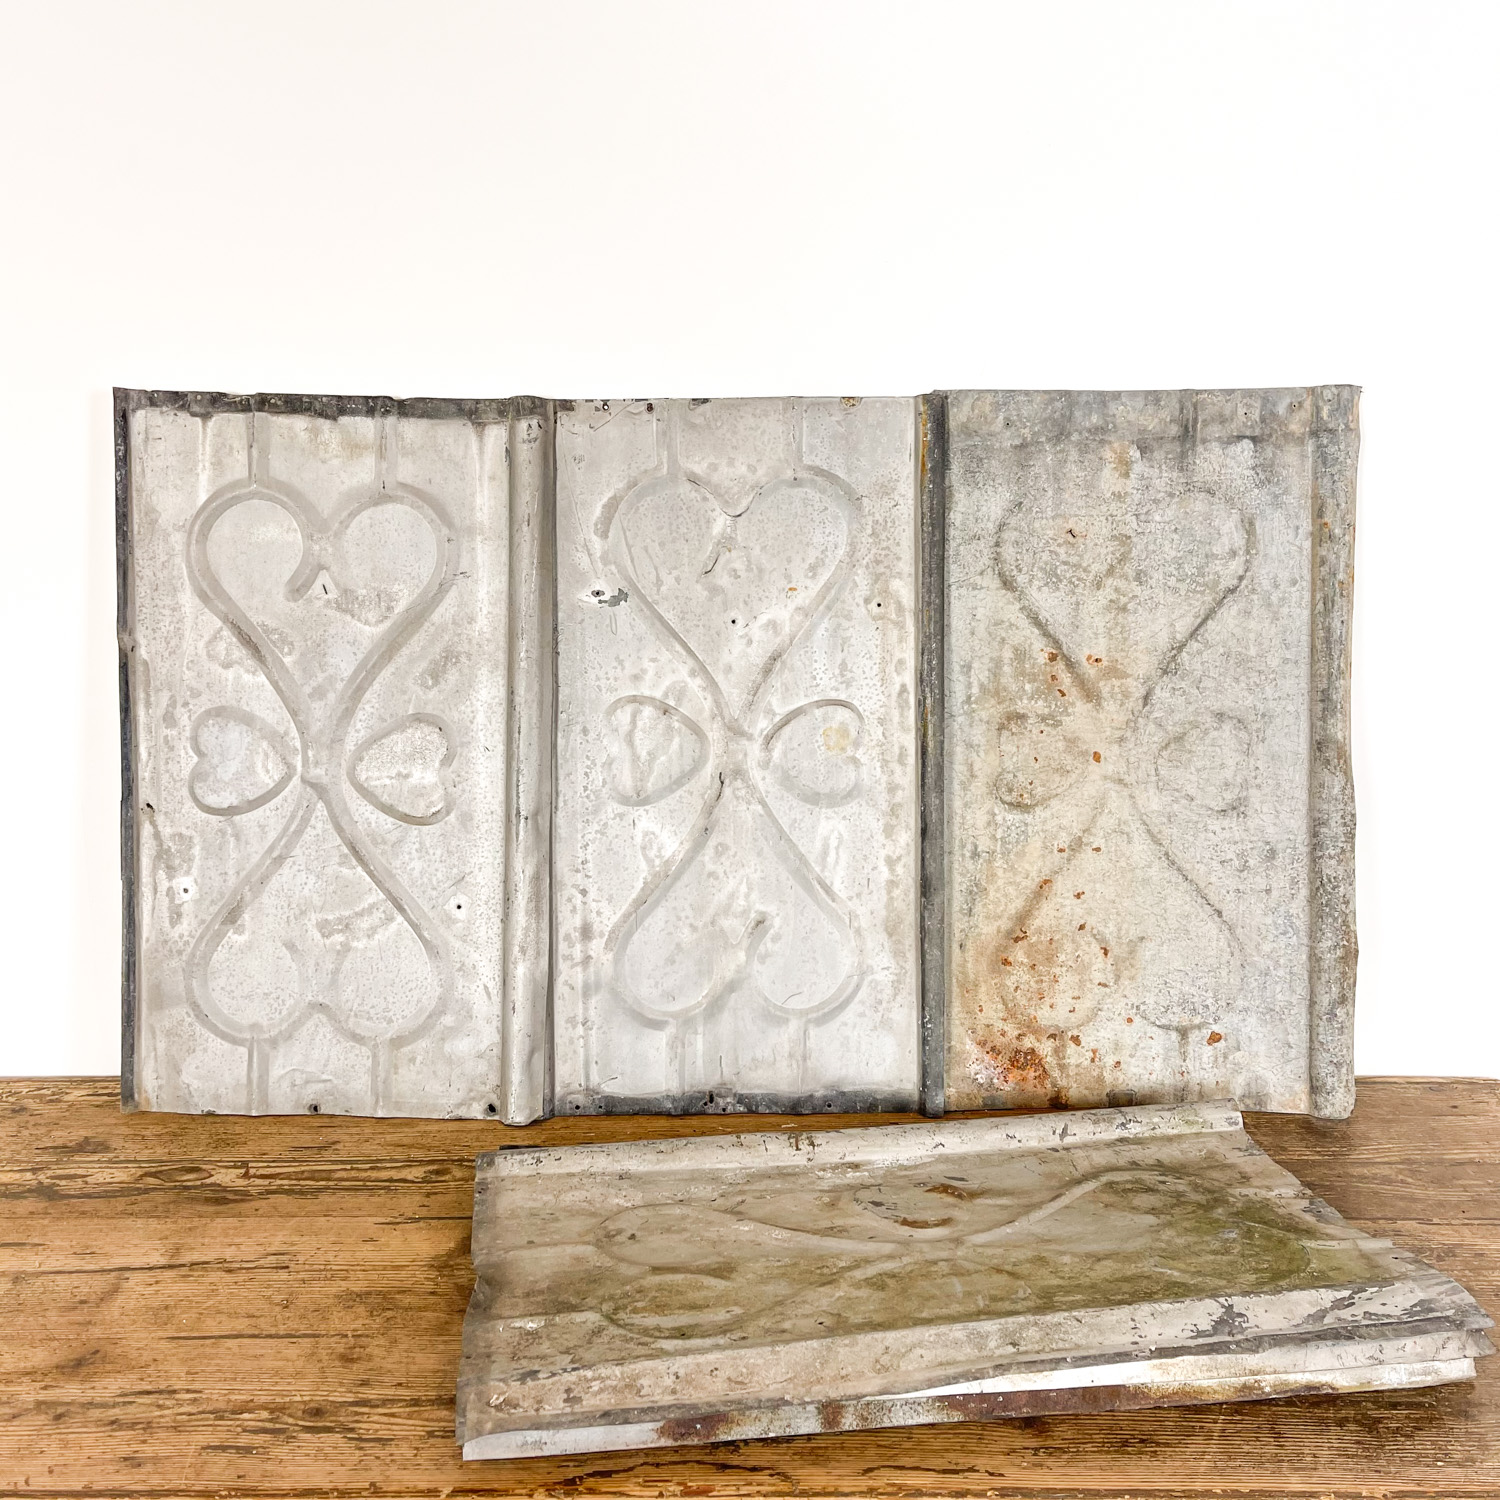 French antique galvanized wall panels Hart